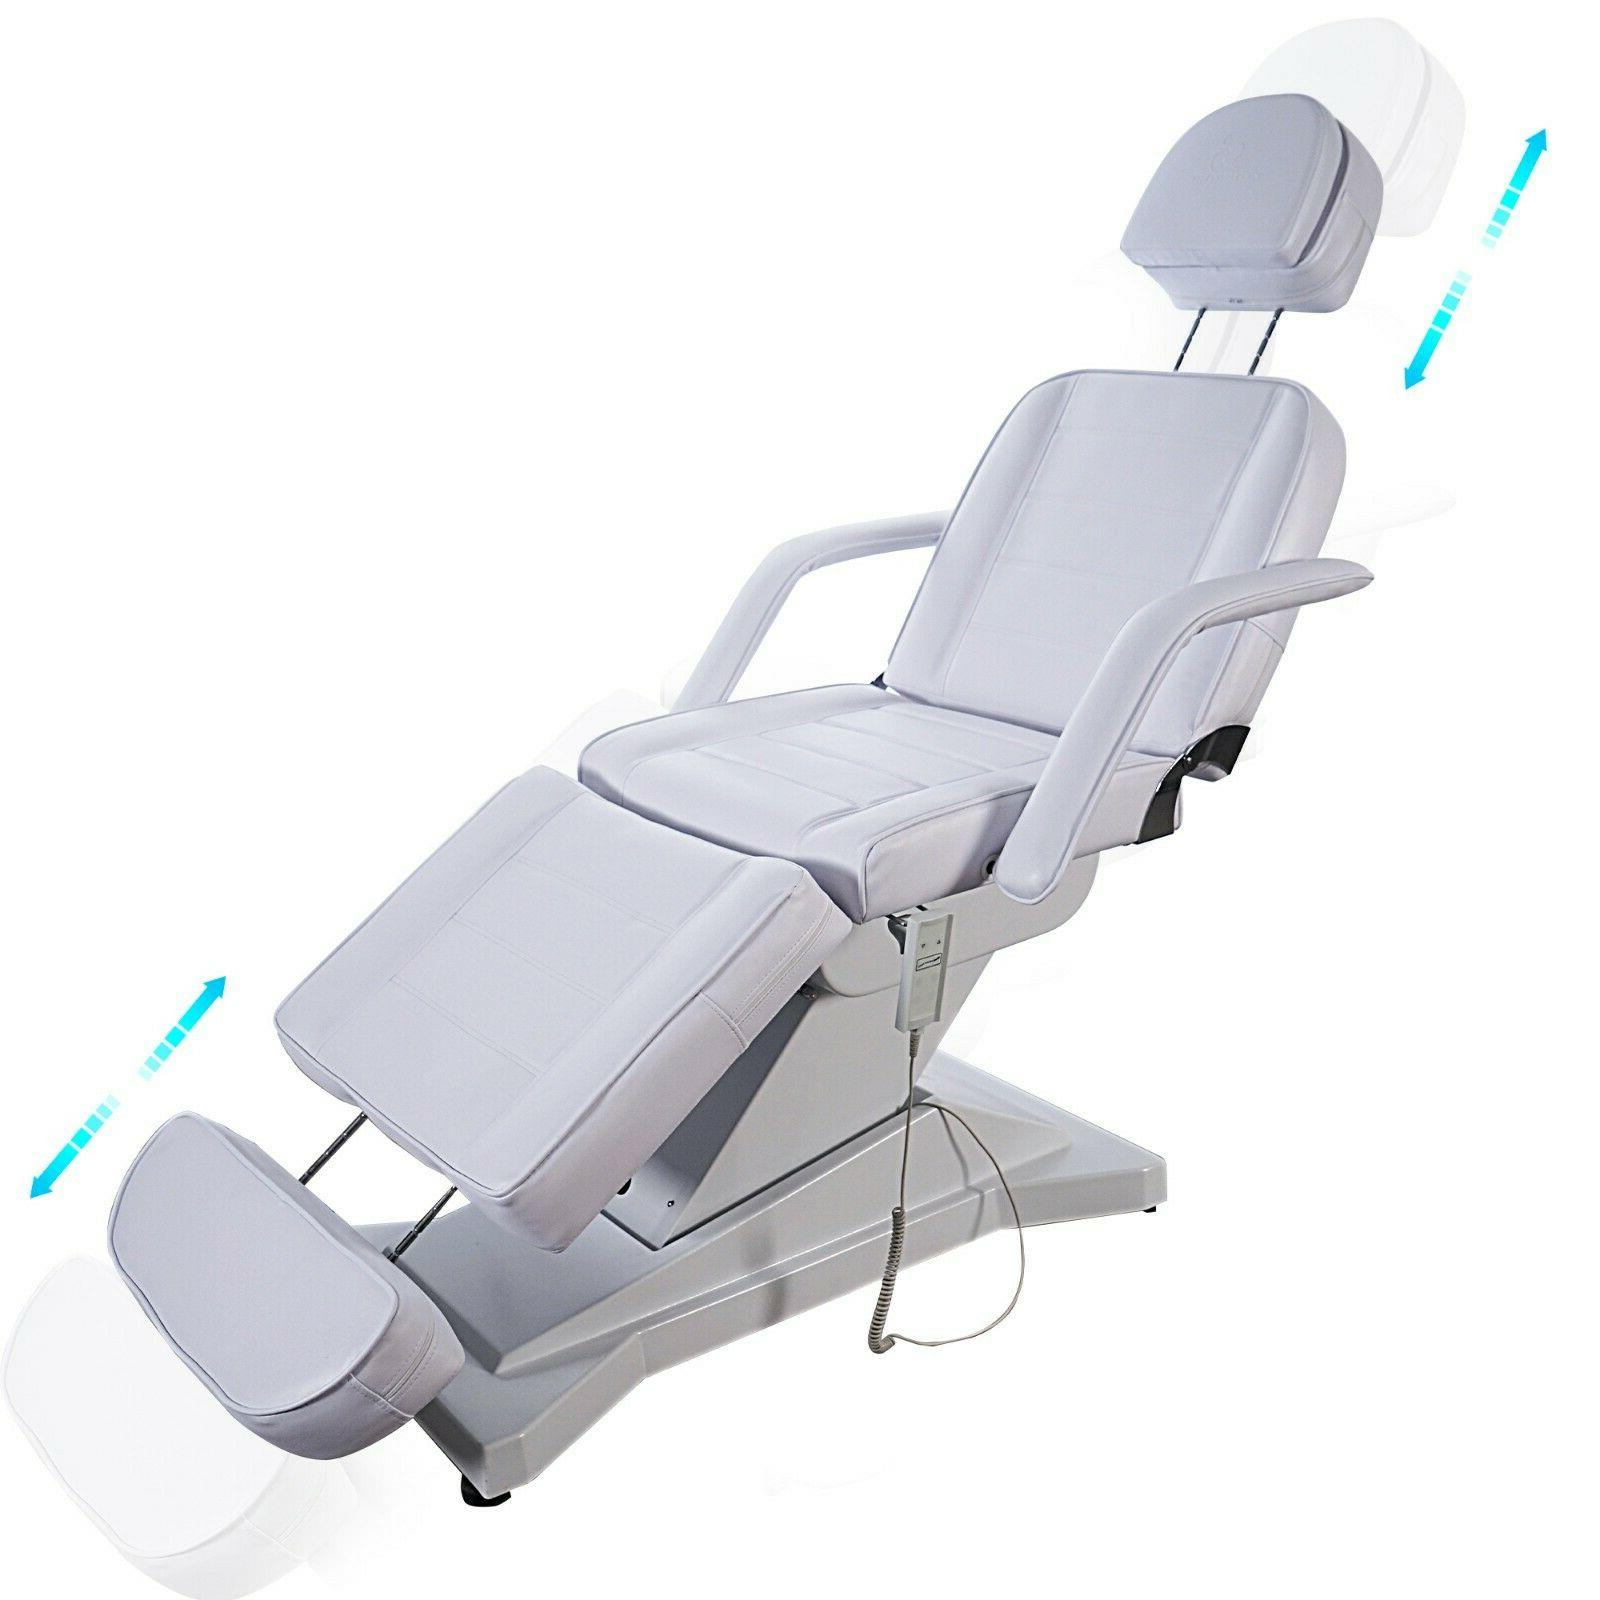 Professional Massage with 1 Electric Motor 6154-9615W